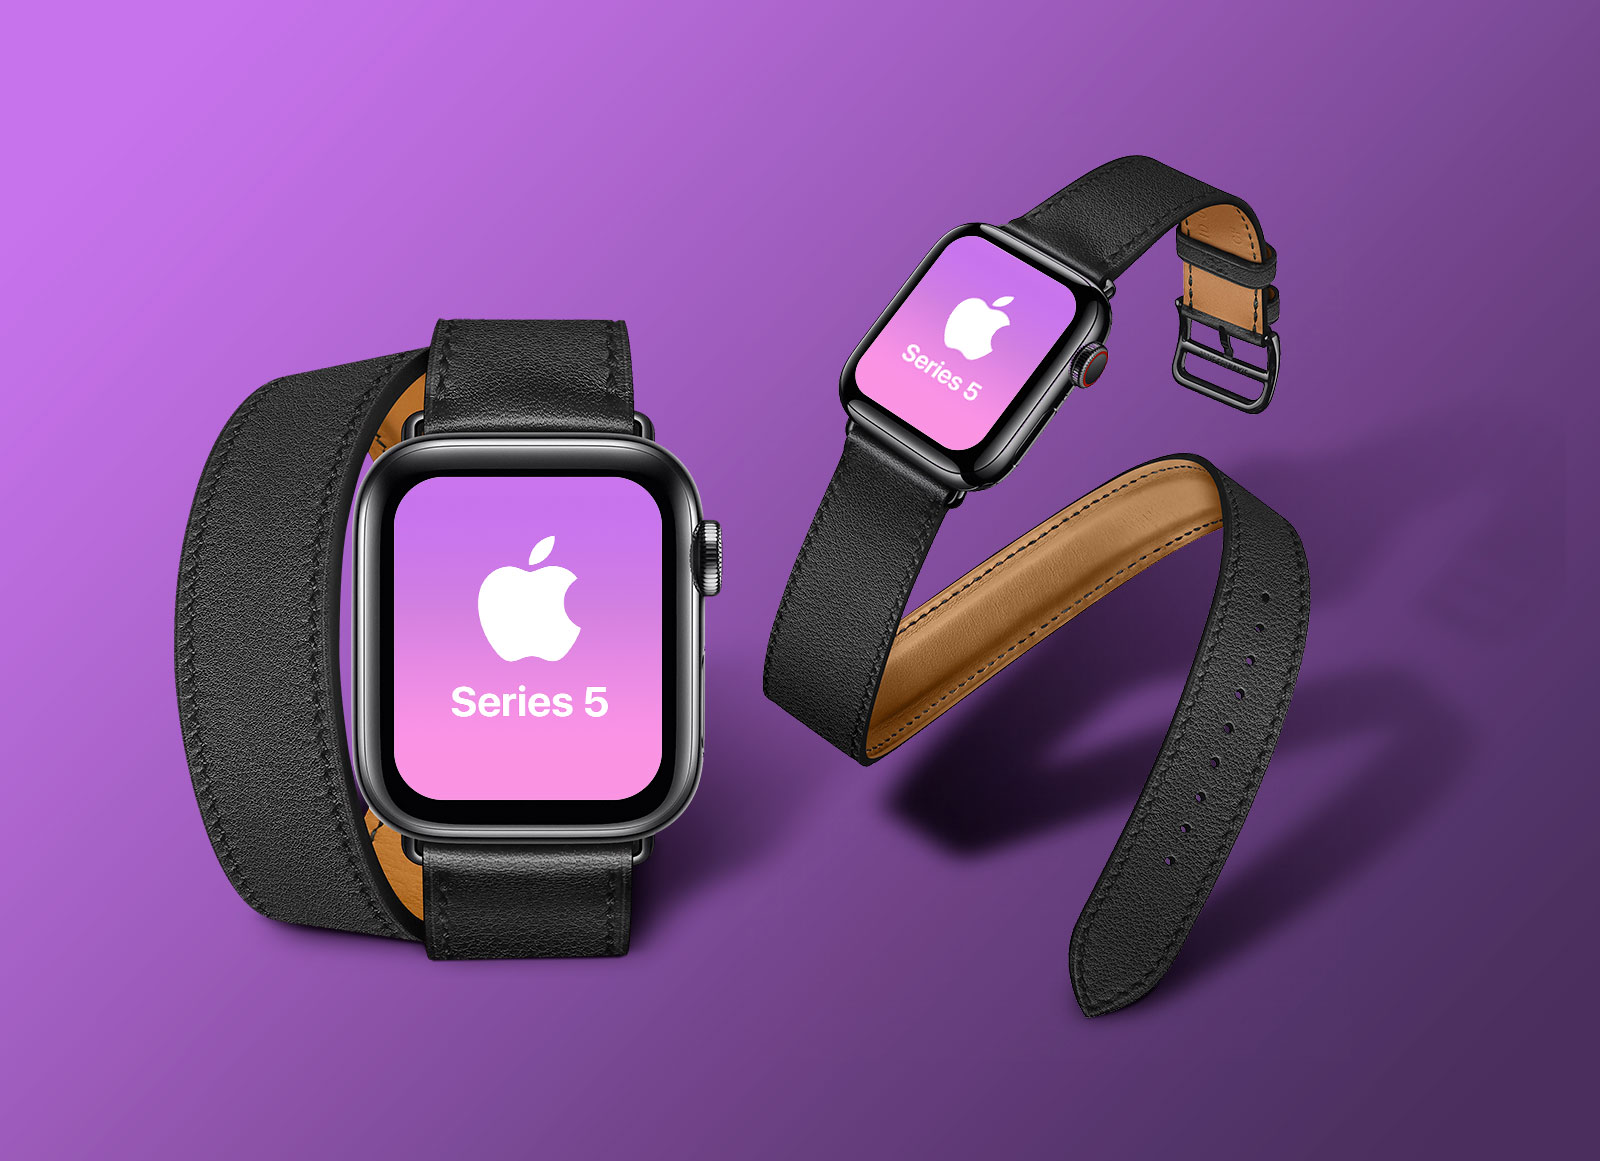 Free-Apple-Watch-Series-5-Mockup-PSD-with-Black-Band